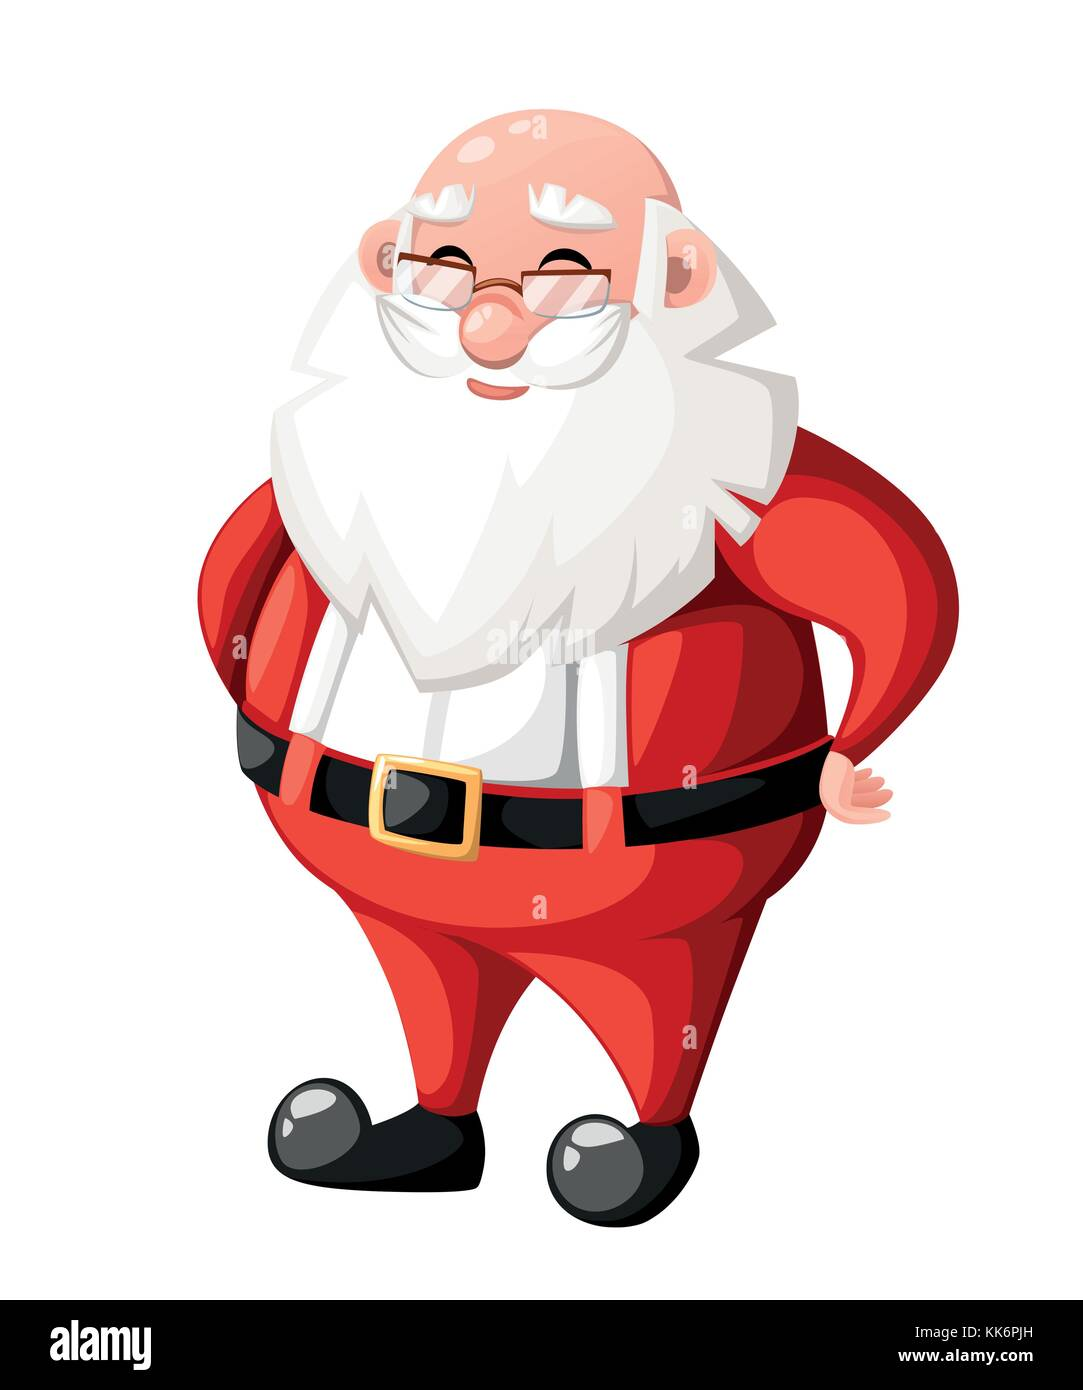 Smiling Christmas Cartoon Santa Claus Character Without Hat Hat Stock Vector Image Art Alamy Cartoon santa claus in sleigh with reindeer. https www alamy com stock image smiling christmas cartoon santa claus character without hat hat holiday 166721257 html